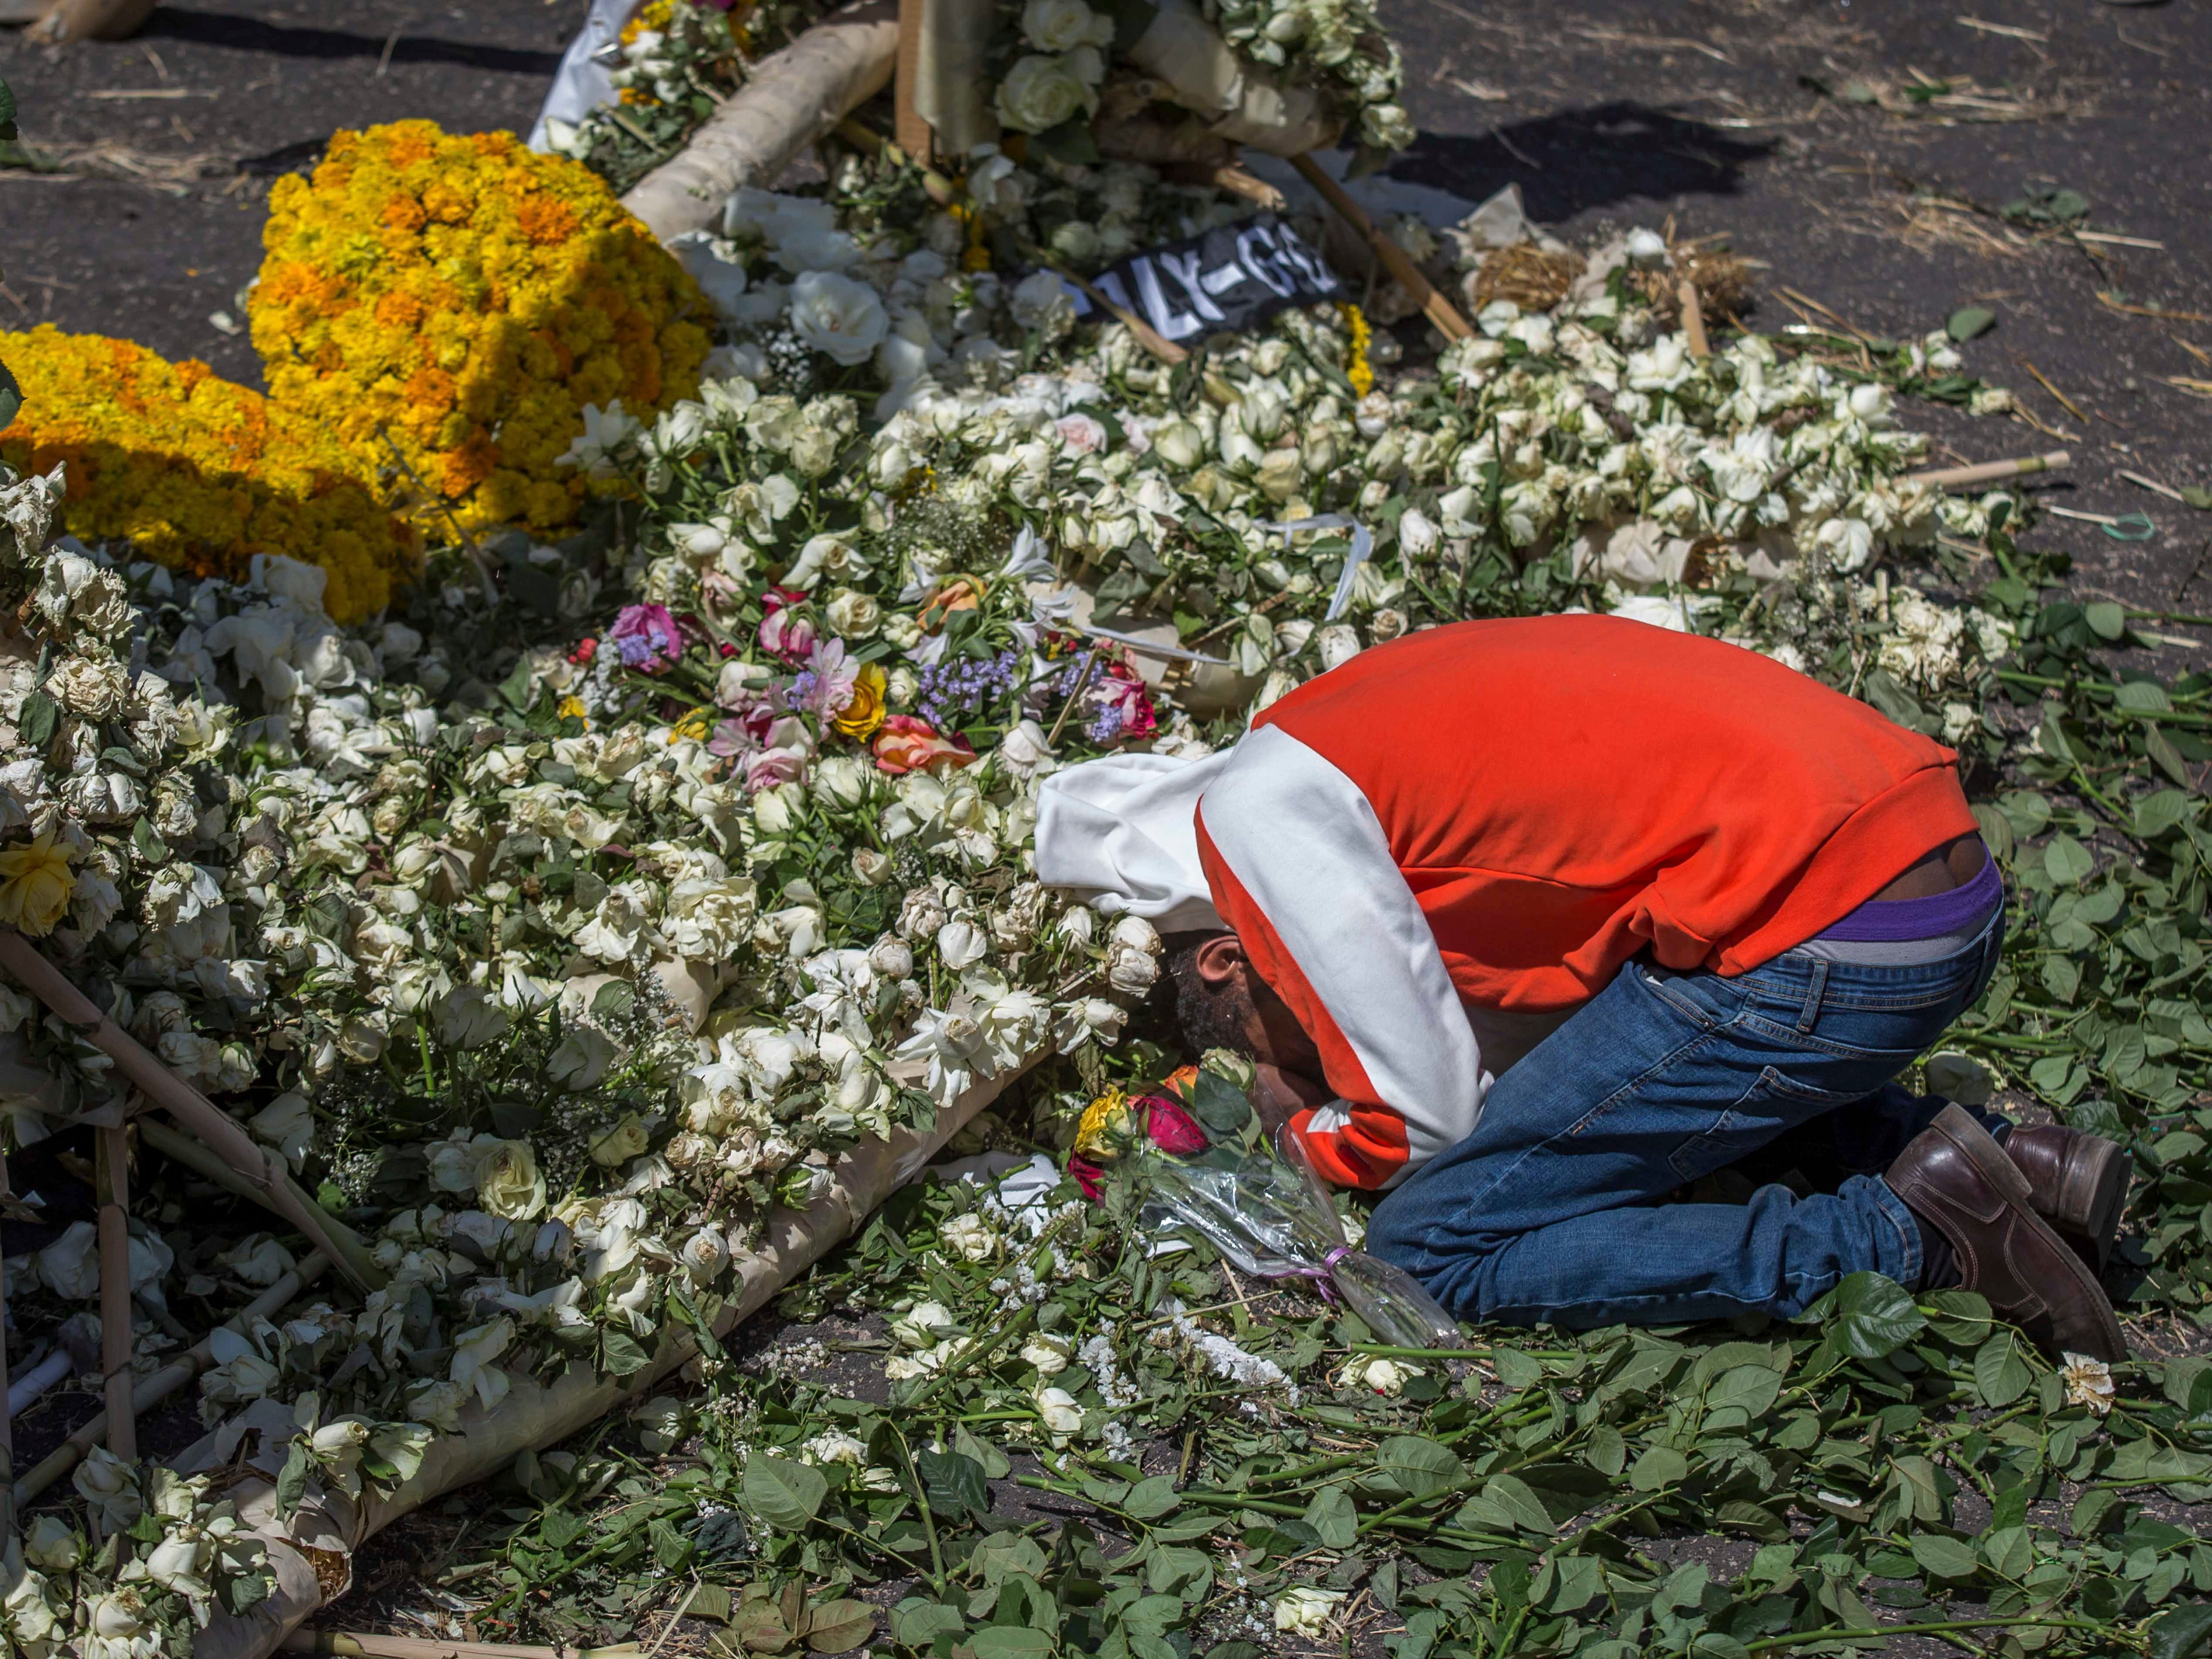 An Ethiopian relative of a crash victim mourns and grieves next to a floral tribute at the scene where the Ethiopian Airlines Boeing 737 Max 8 crashed shortly after takeoff on Sunday killing all 157 on board, near Bishoftu, south-east of Addis Ababa, in Ethiopia Friday, March 15, 2019. Analysis of the flight recorders has begun in France, the airline said Friday, while in Ethiopia officials started taking DNA samples from victims' family members to assist in identifying remains.